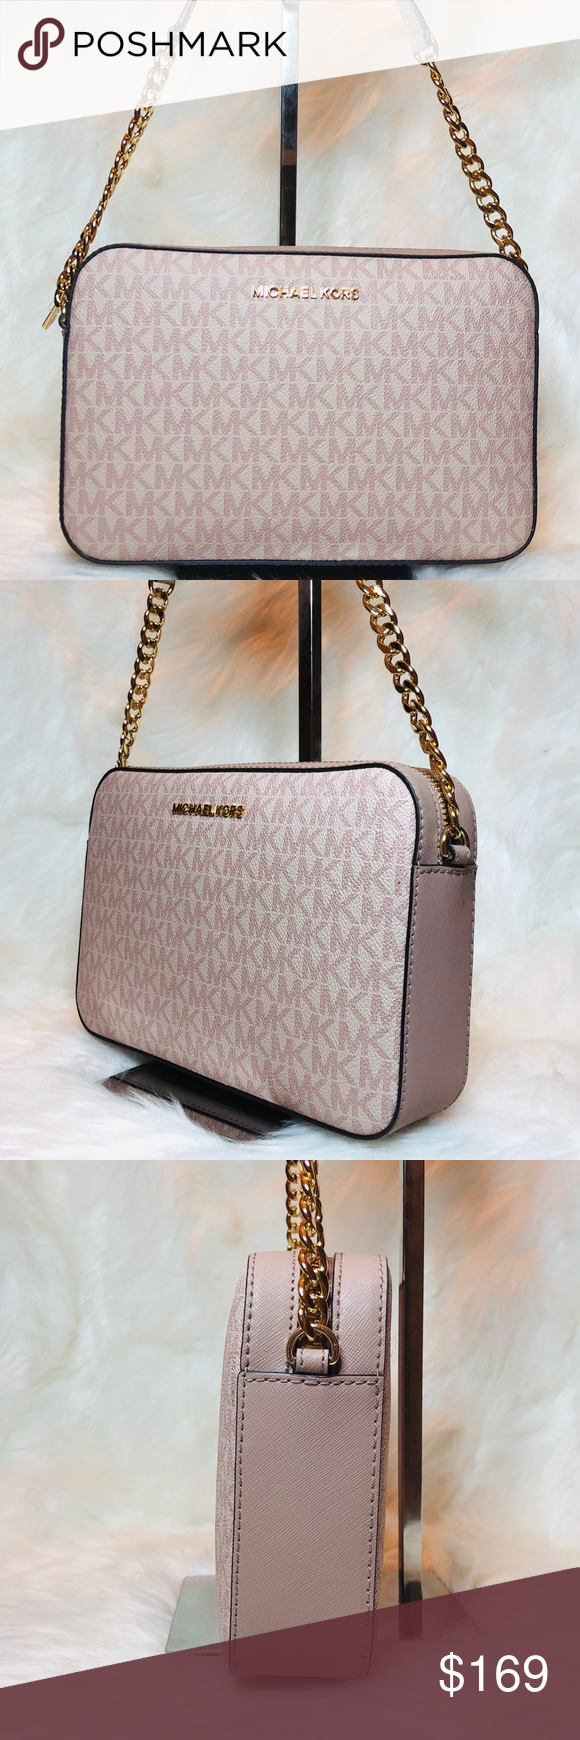 7e0b4ac90 Michael Kors Jet Set crossbody Fawn Ballet Jet Set Item Crossbody Bag MK  Signature Rose Fawn